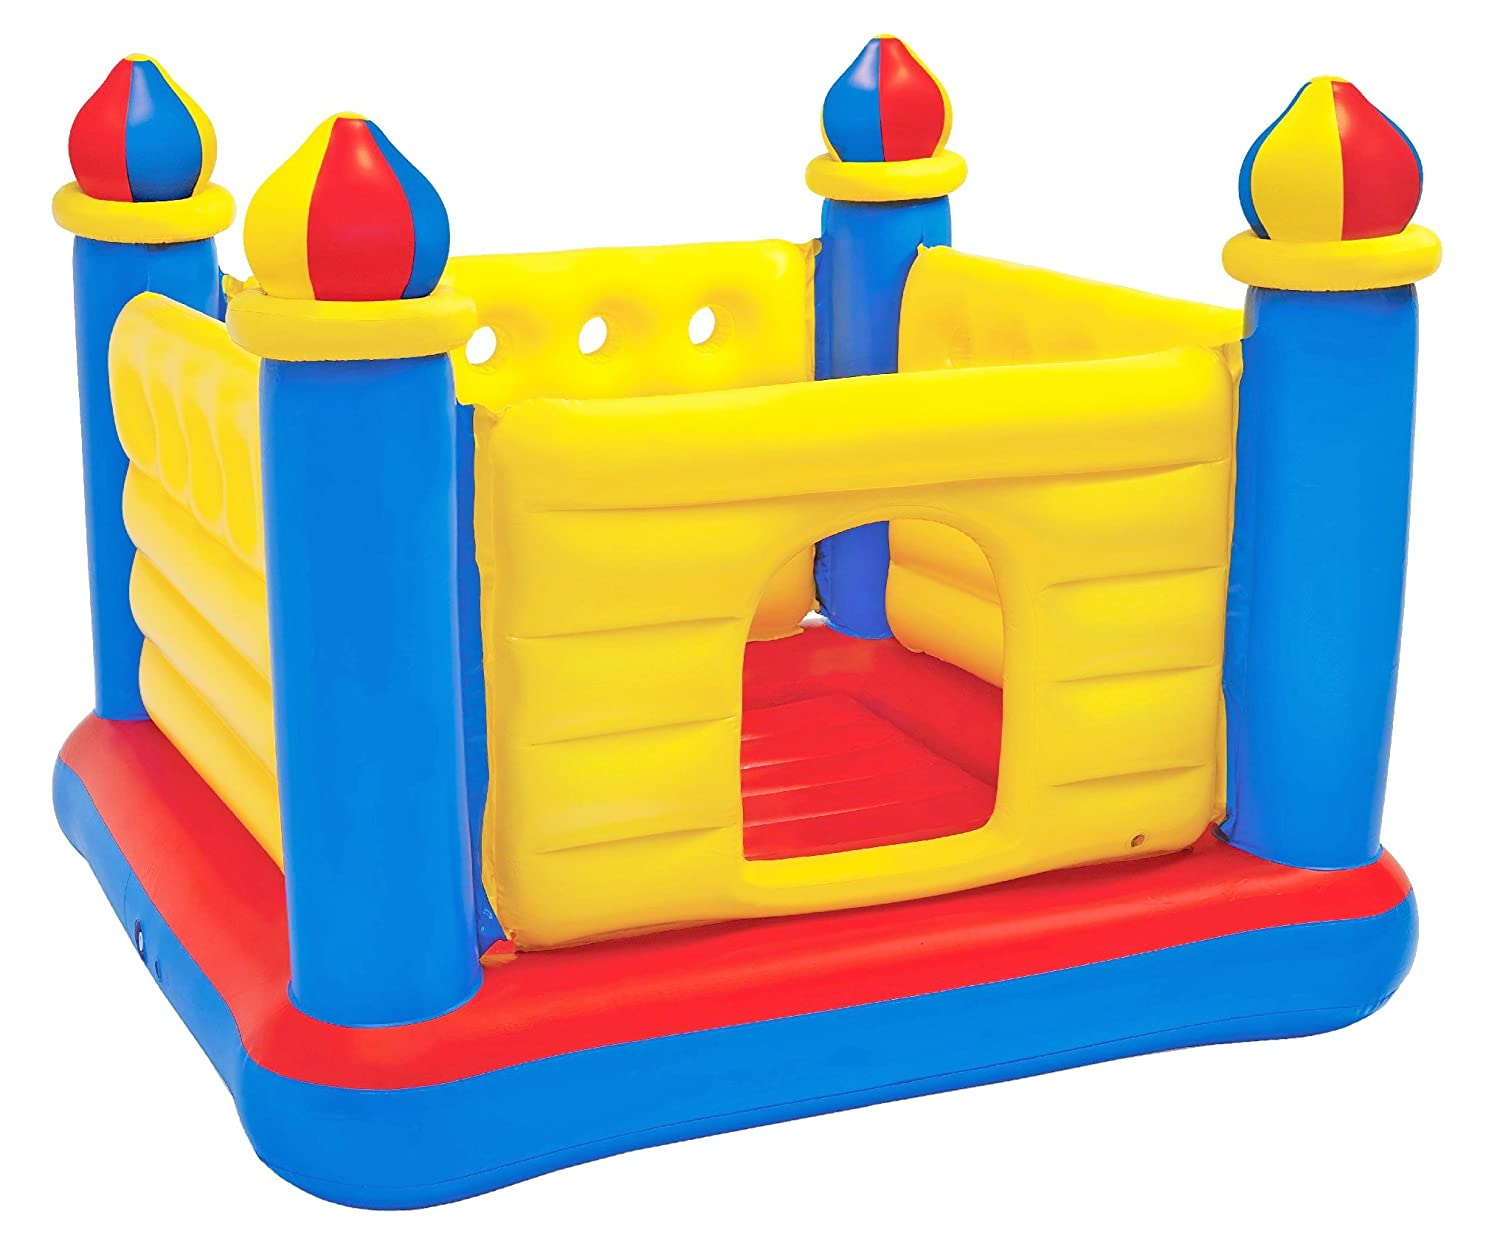 Intex 48259NP - Castillo inflable multicolor: Amazon.es: Juguetes ...